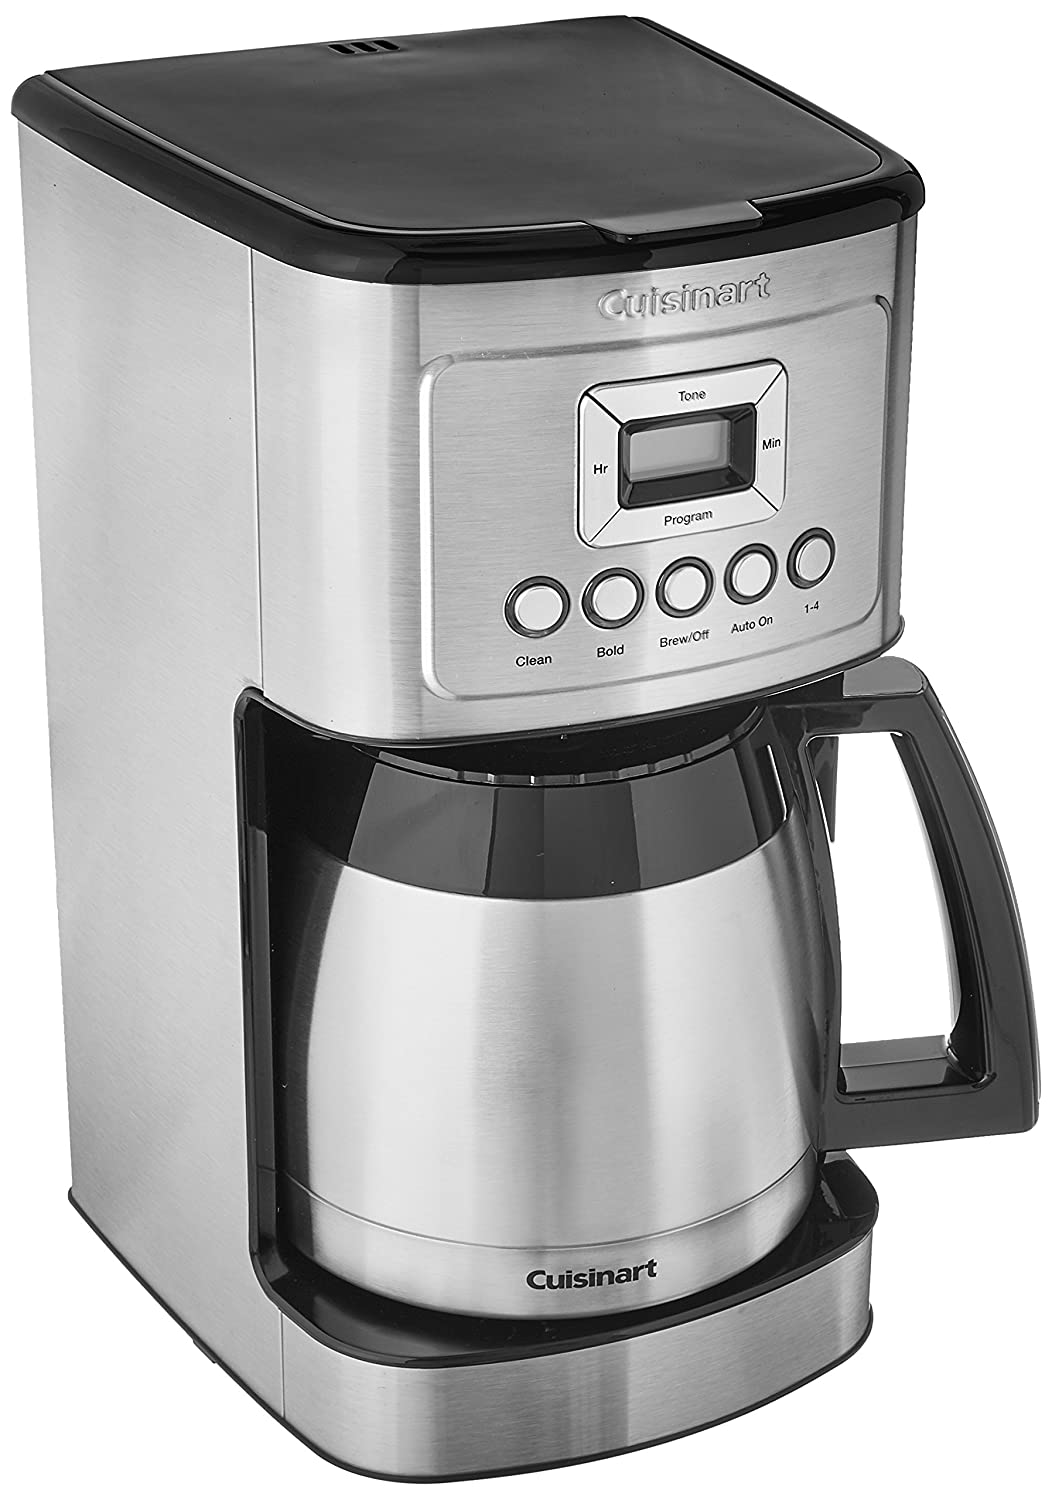 runner up: cuisinart dcc-3400 stainless steel thermal coffeemaker 12 cup